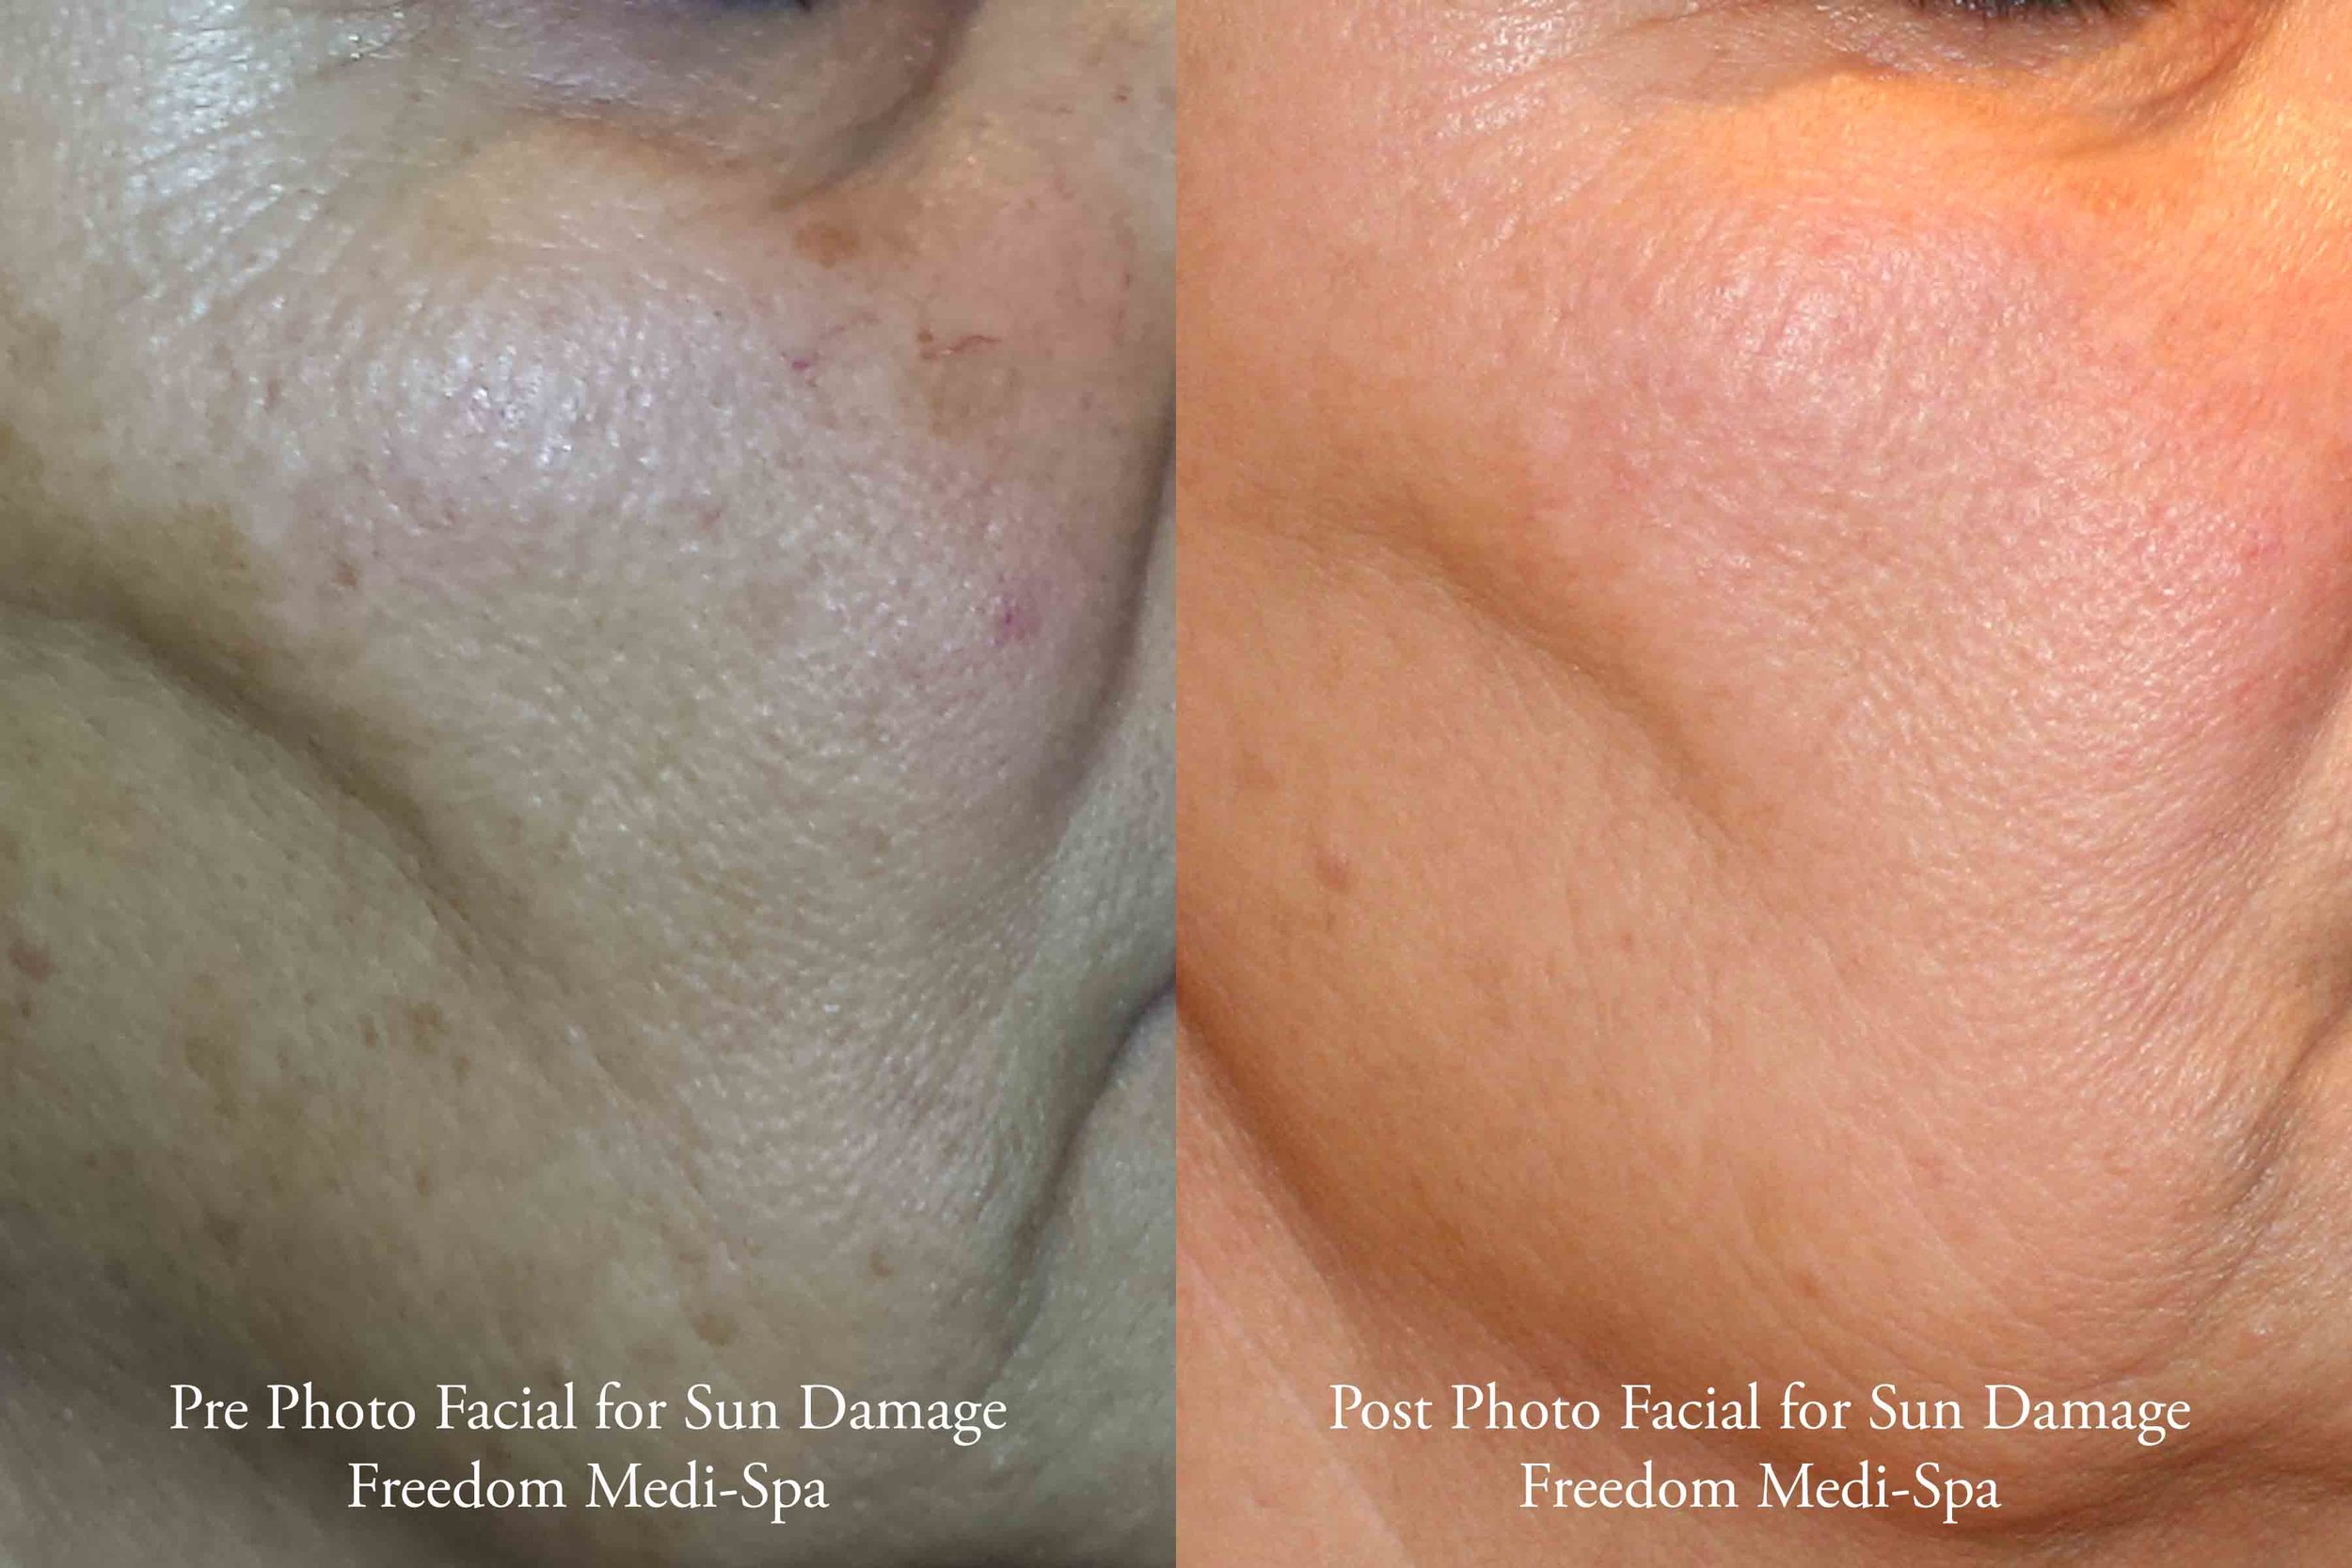 Photo Facial for Sun Damage 10-2016.jpg